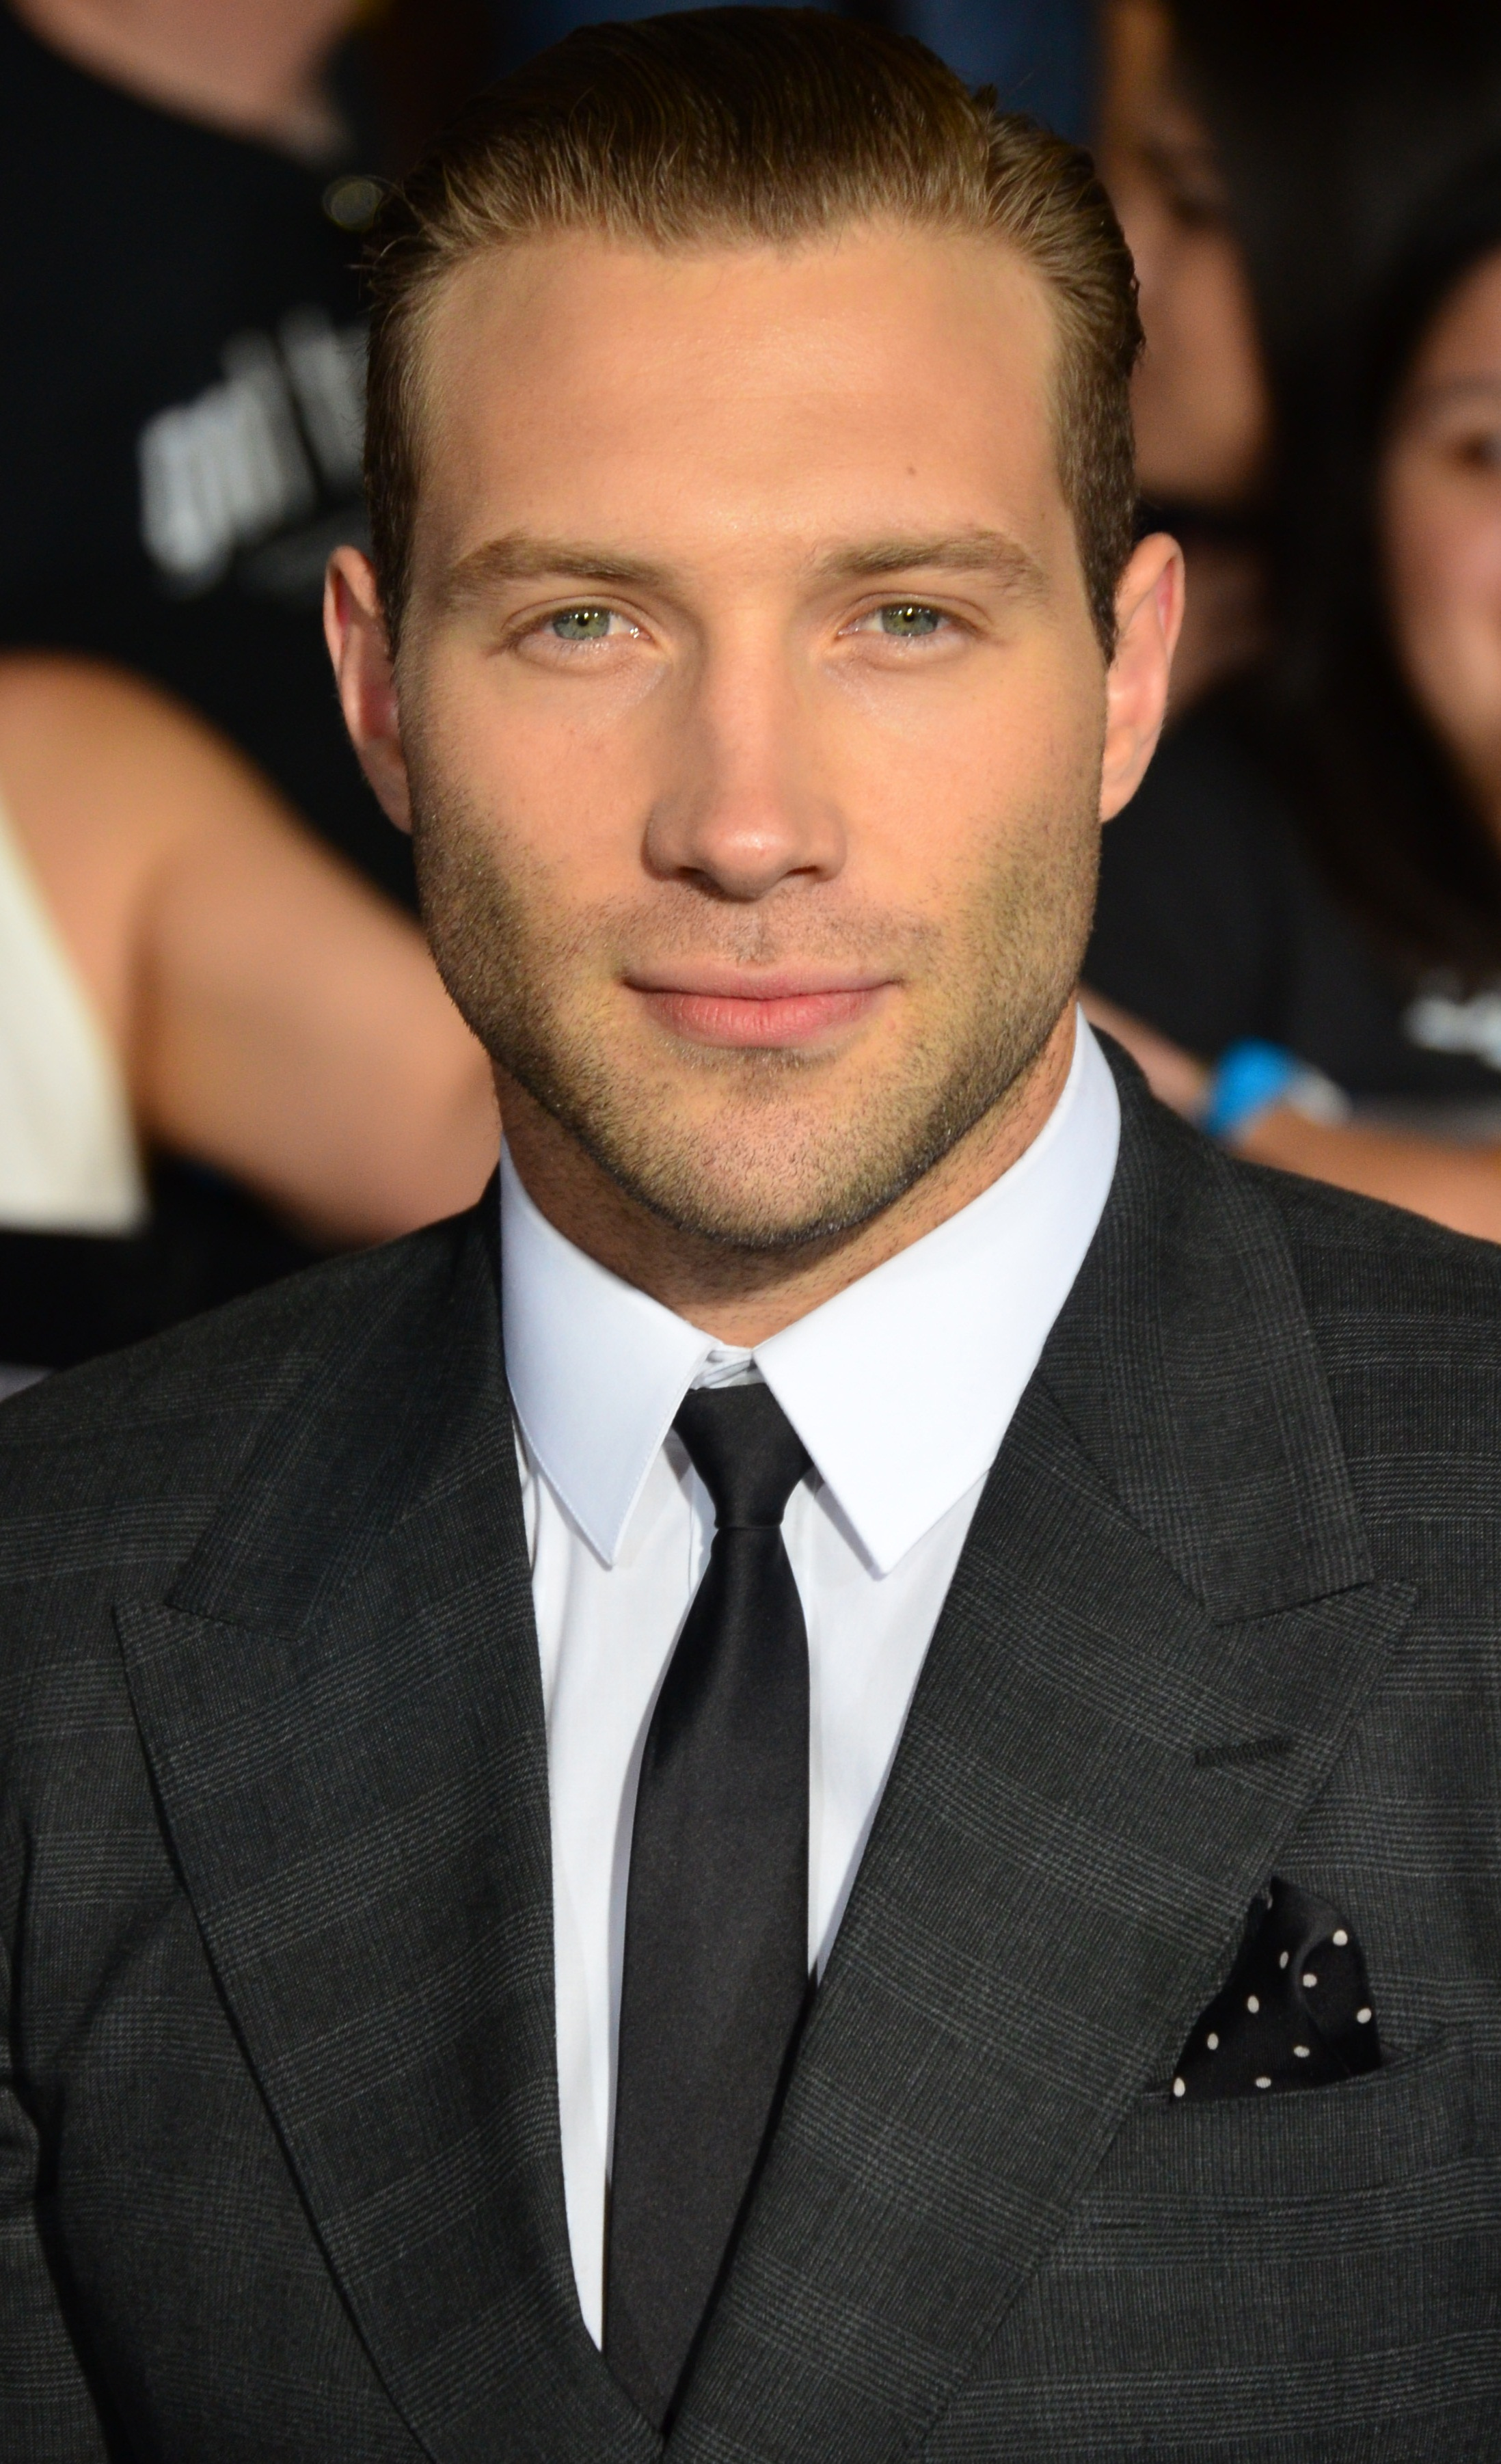 The 32-year old son of father Chris Courtney and mother Karen Courtney, 185 cm tall Jai Courtney in 2018 photo